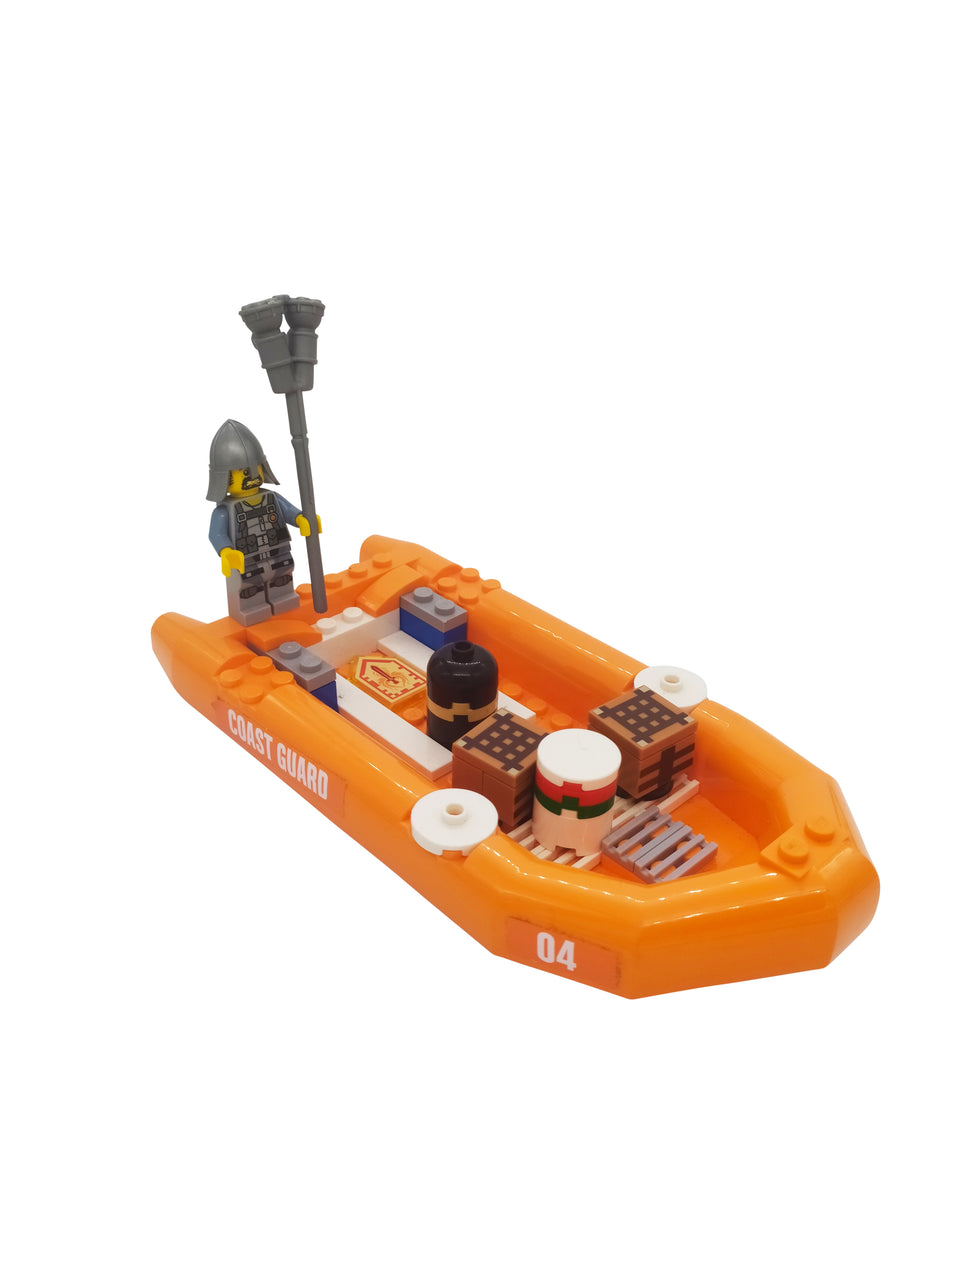 Lego Scene- Boat with treasures